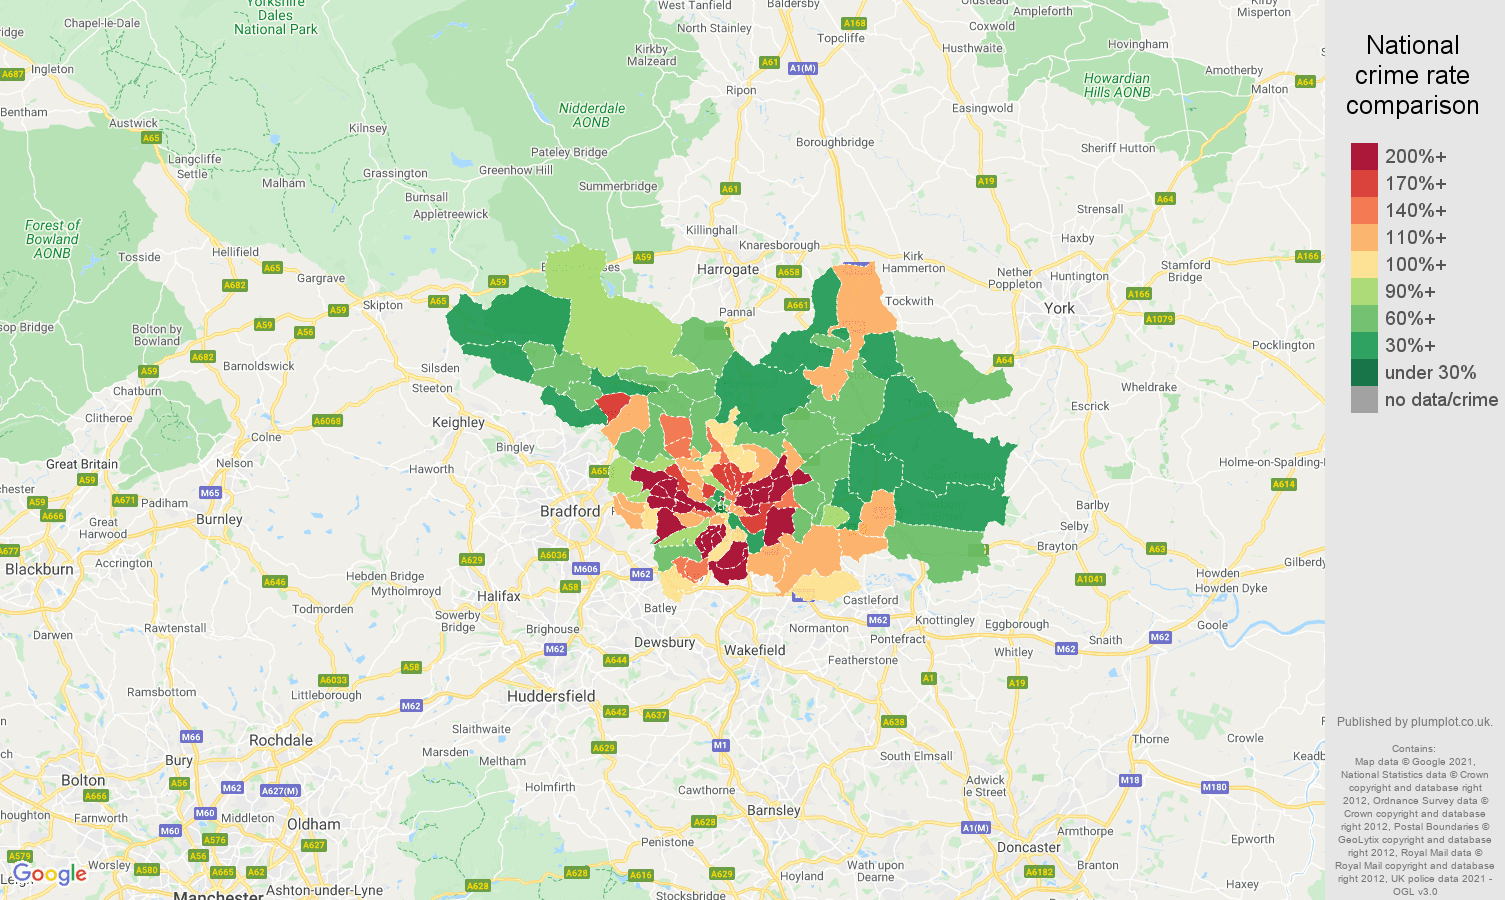 Leeds violent crime rate comparison map